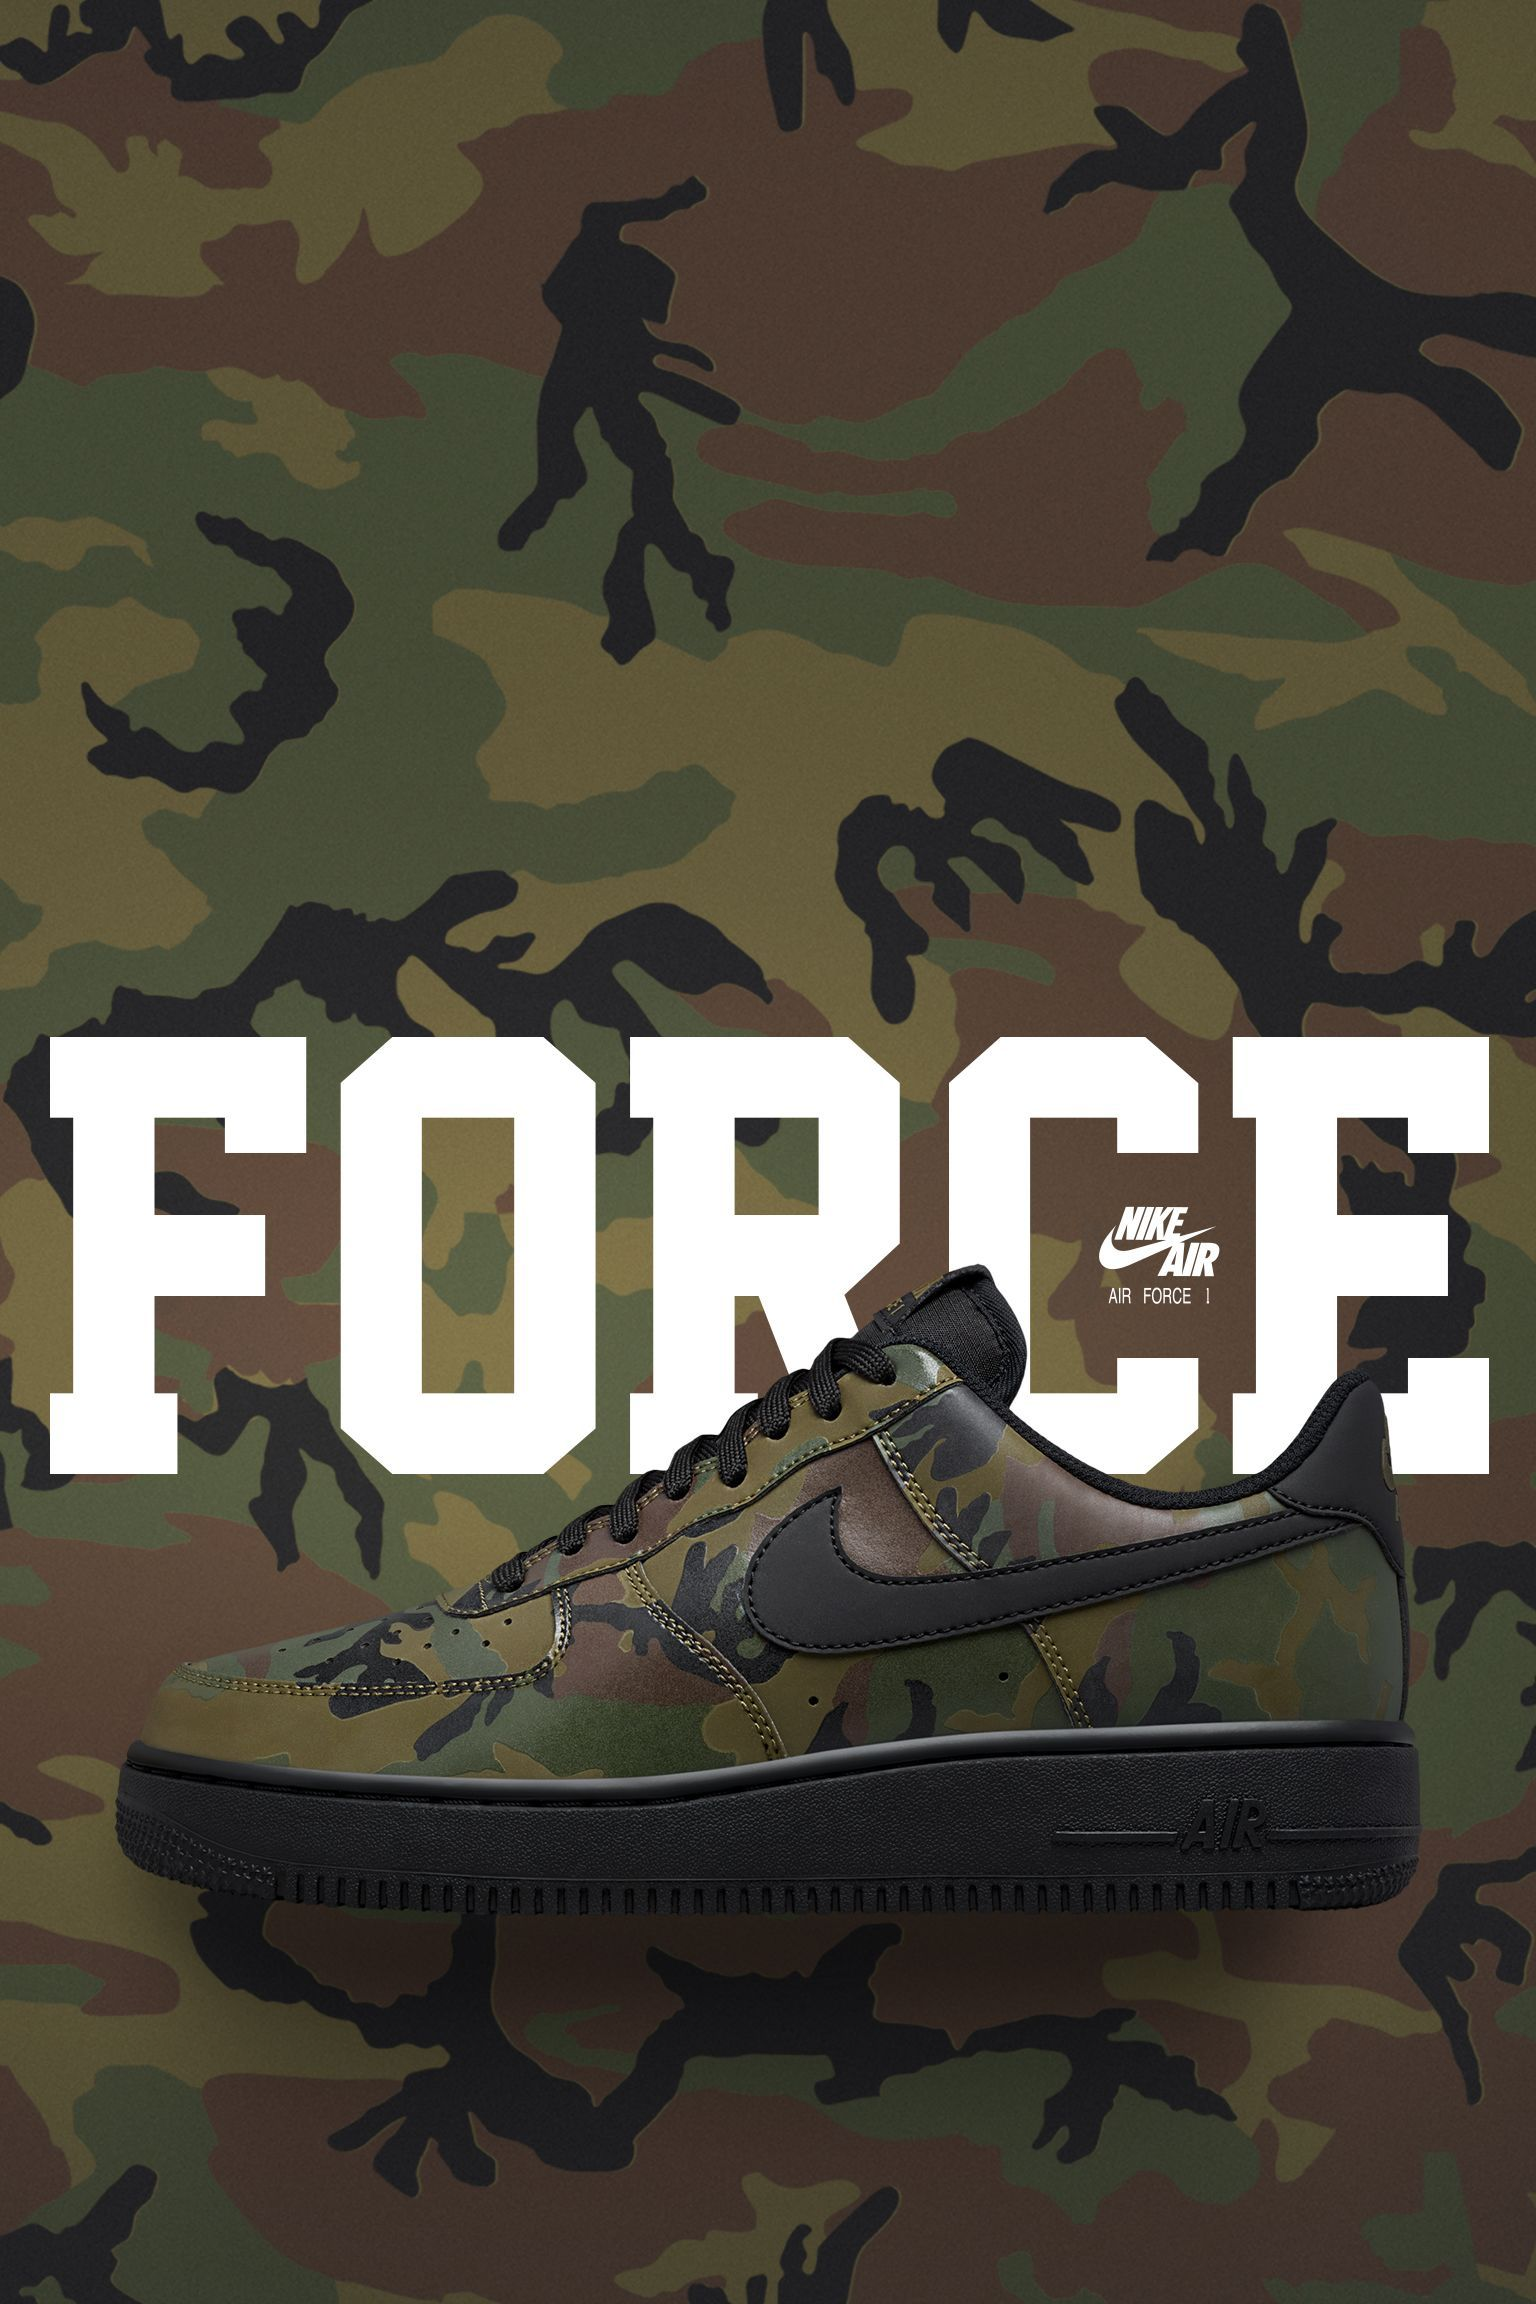 e73c1b53d11e Nike Air Force 1 Low 07  Medium Olive Camo Reflective  Release Date. Nike+  Launch GB